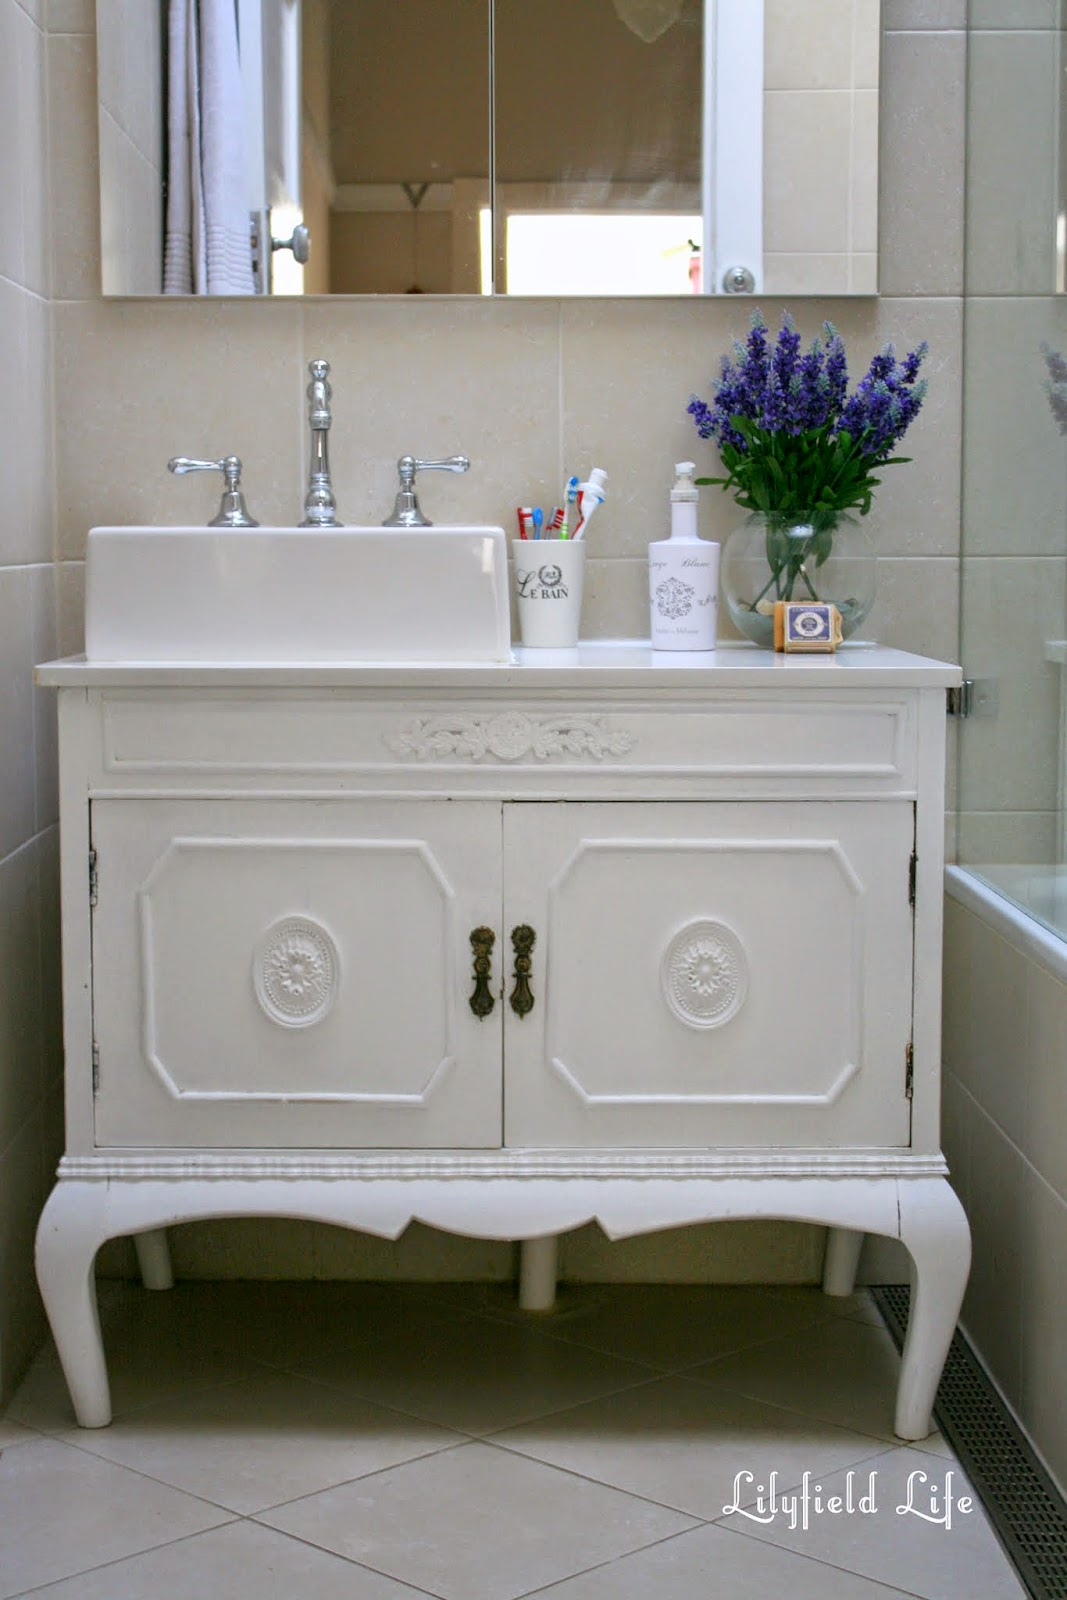 lilyfield life: vintage cabinet turned bathroom vanity and my